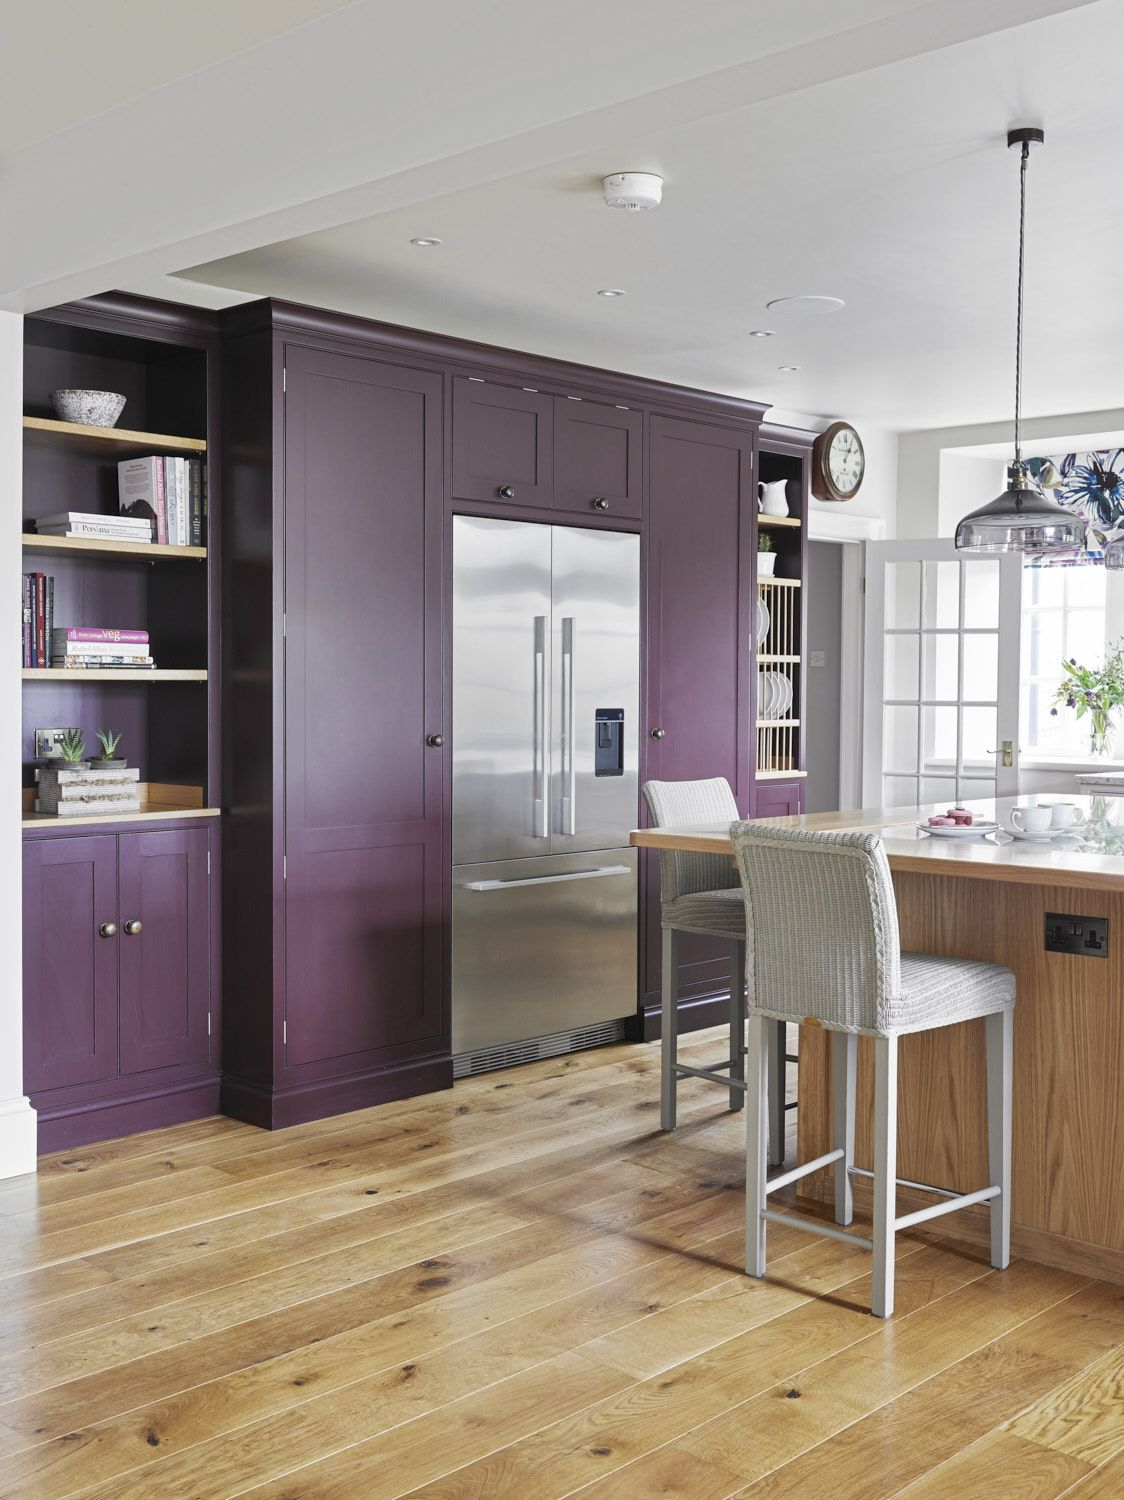 Best We Love The Bold Farrow And Ball Brinjal Bespoke Cabinetry 400 x 300